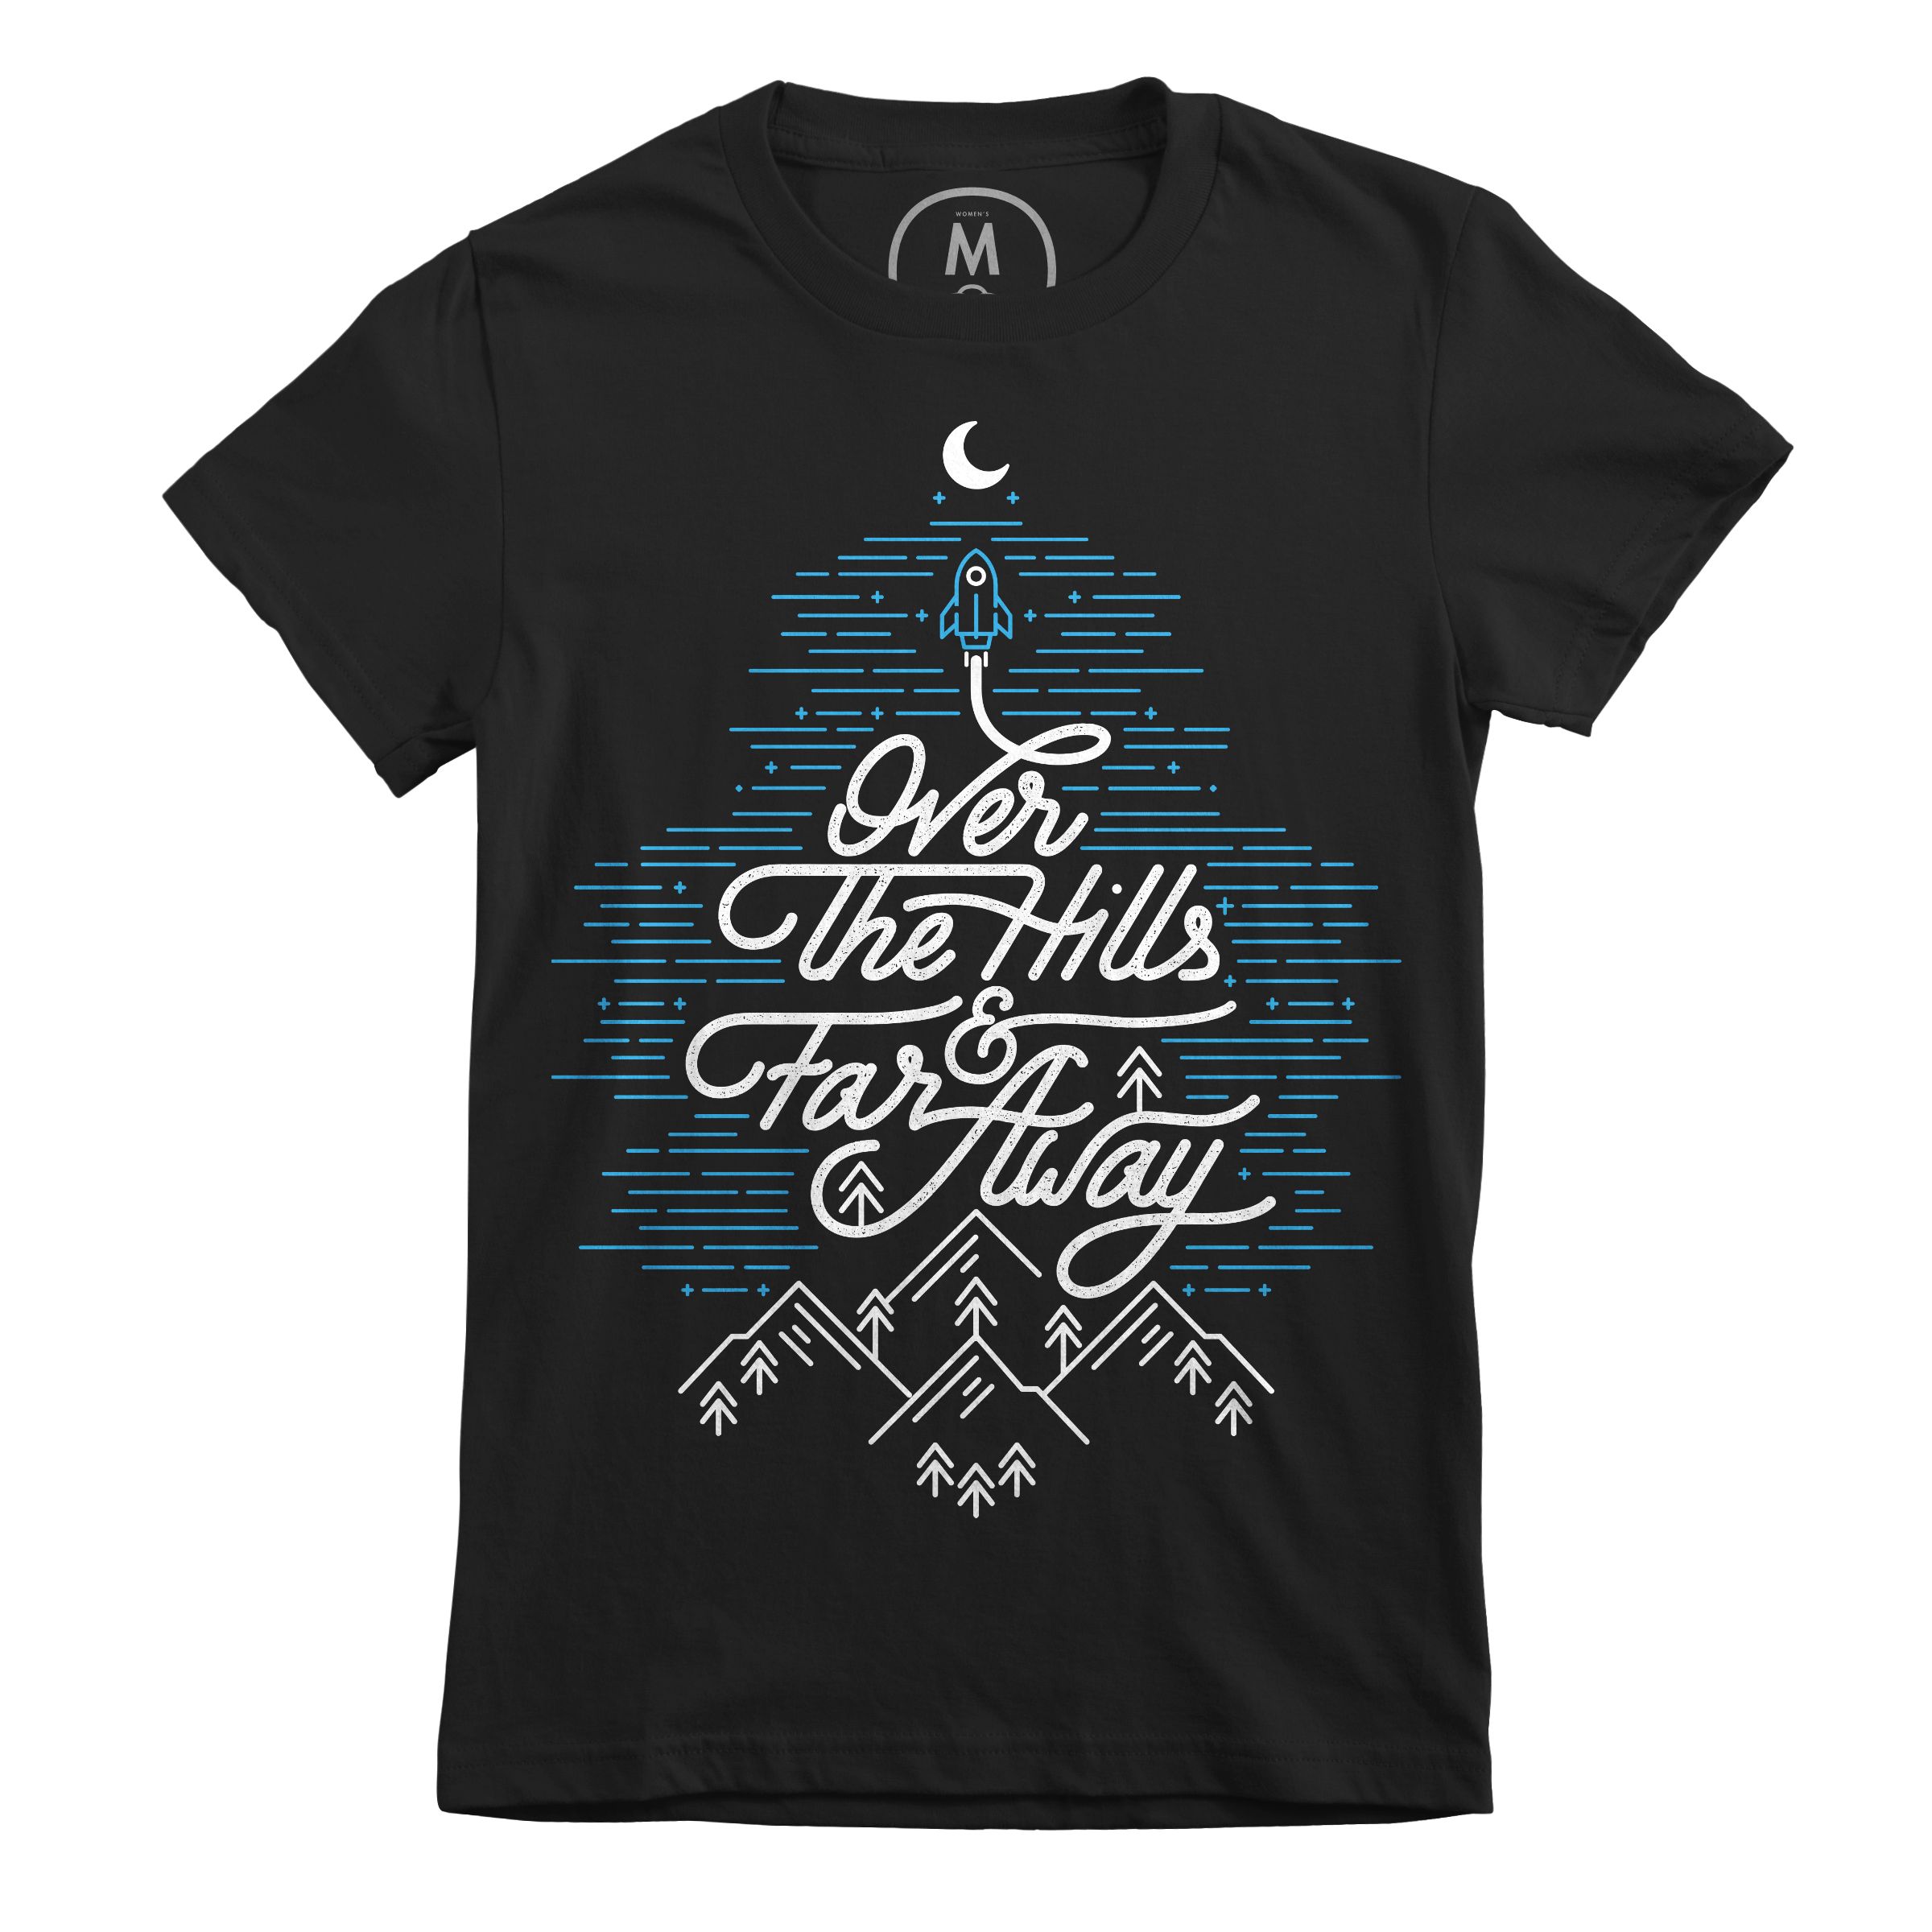 Over The Hills And Far Away Black (Women's)